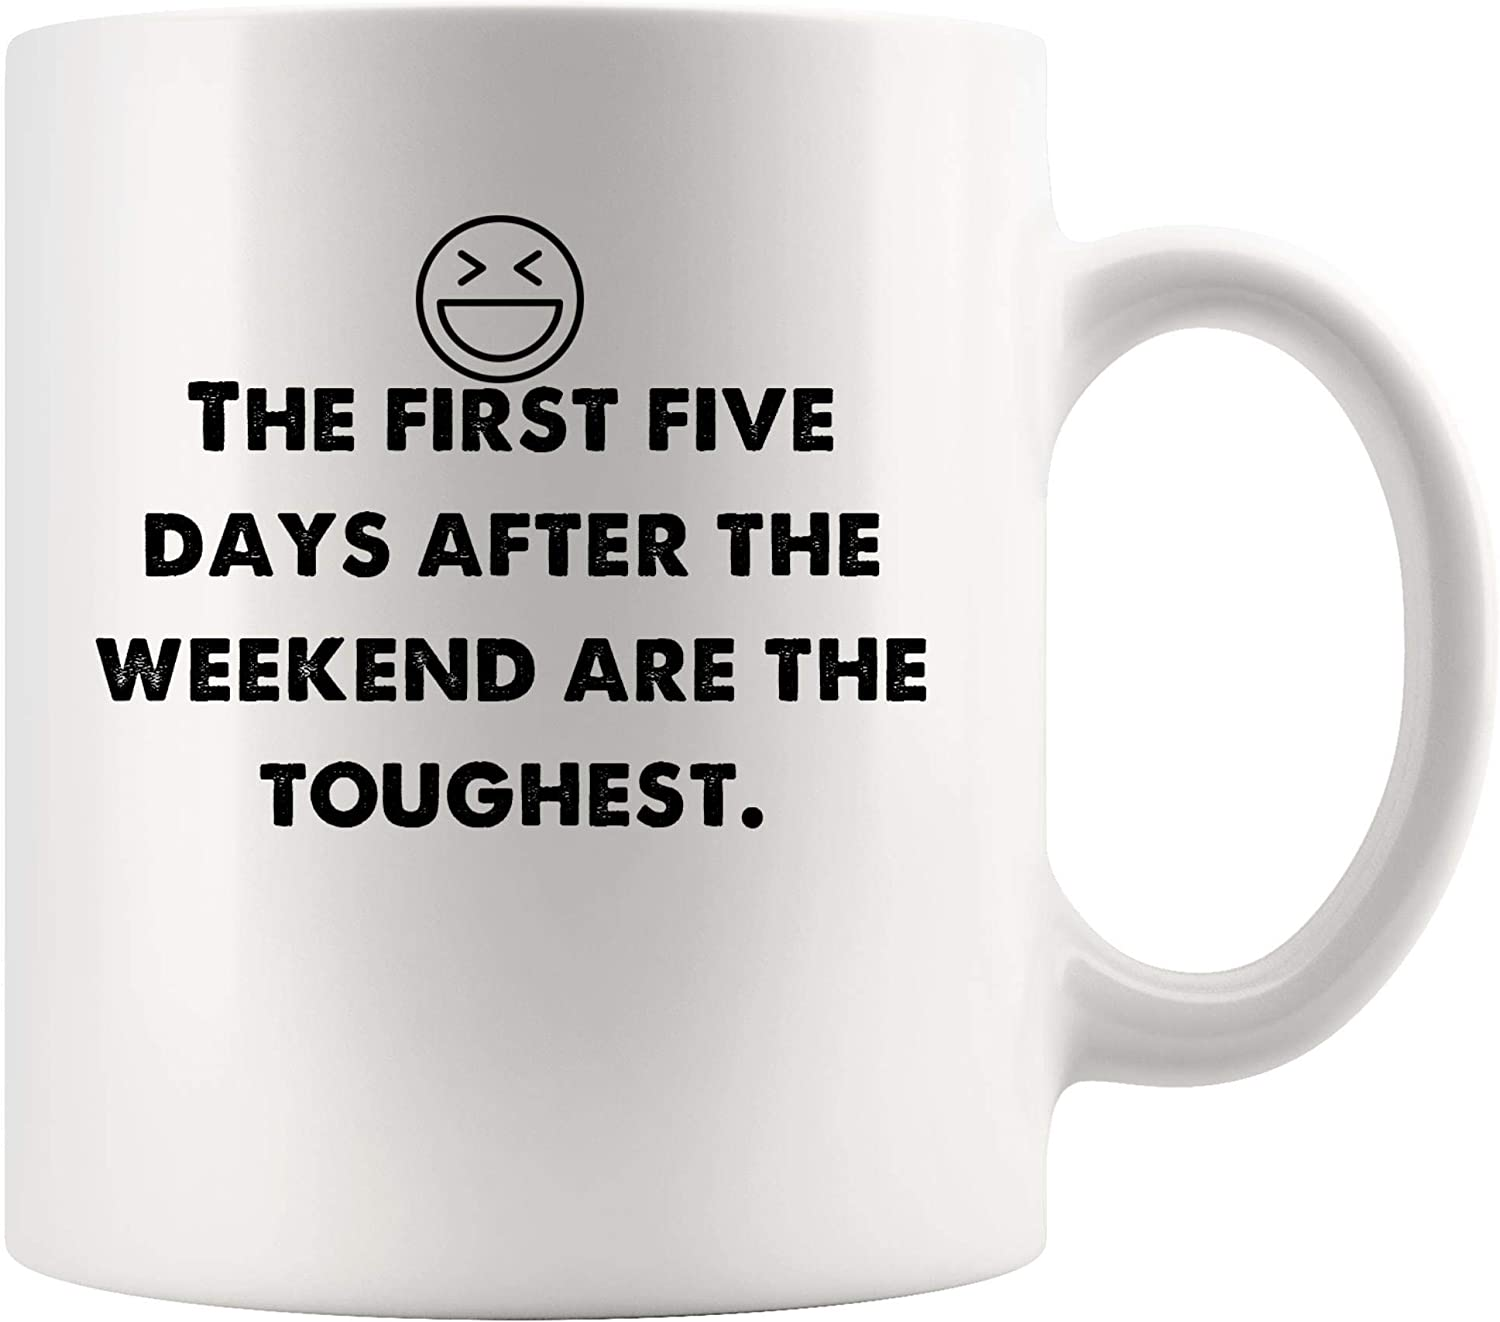 com first five days after weekend are toughest funny mugs